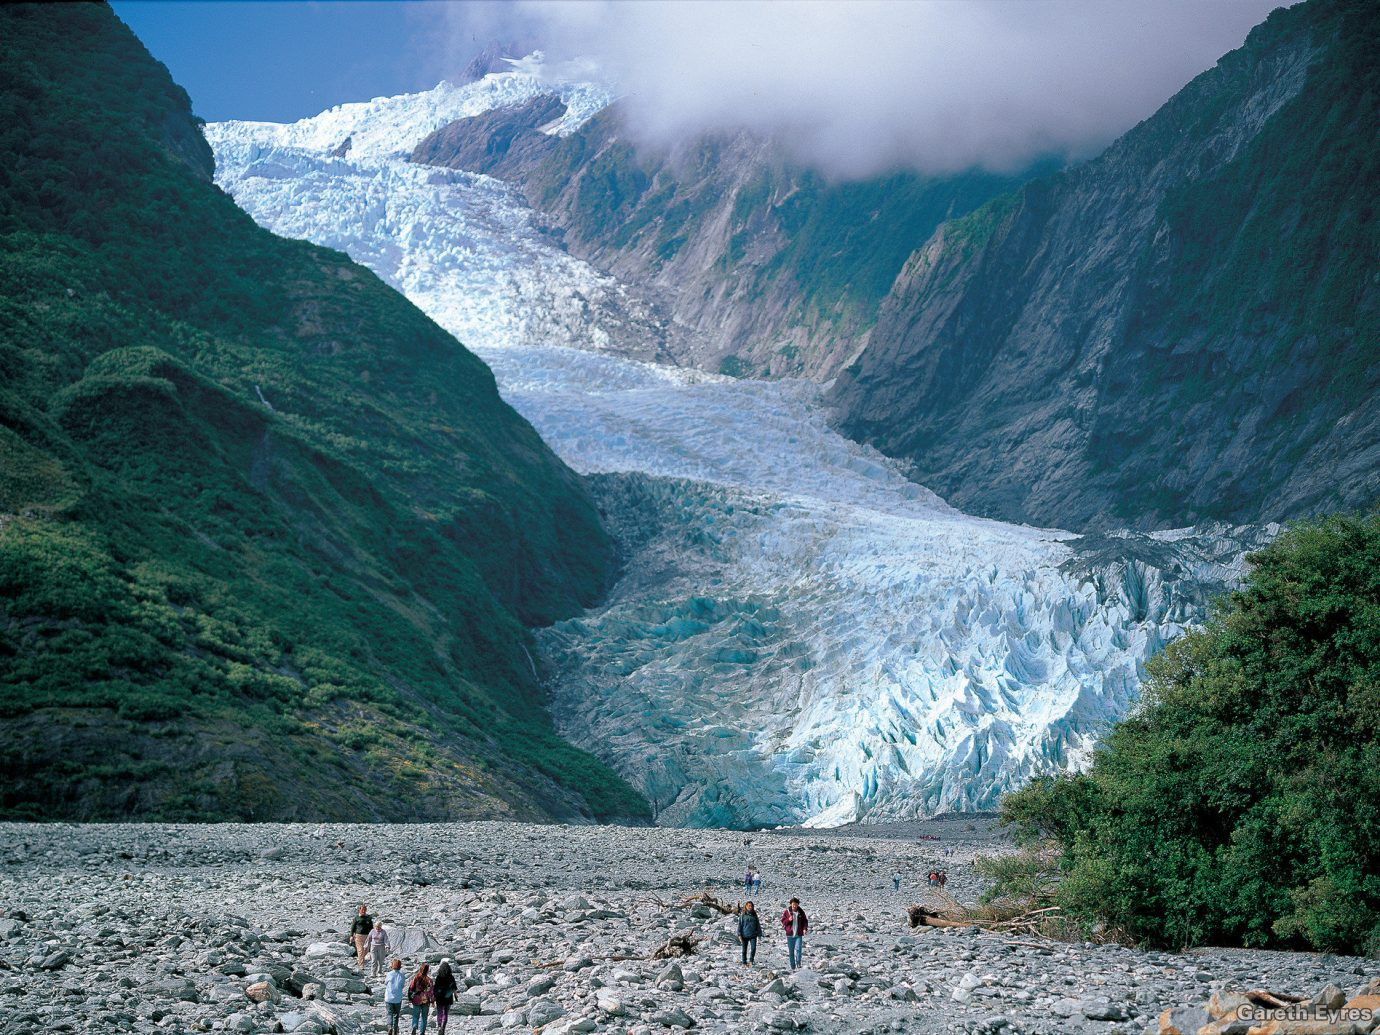 Greenery Mountains Nature Oceania Outdoors remote snow Trip Ideas mountain outdoor geographical feature landform glacier fjord glacial landform geological phenomenon people moraine mountain range water feature cirque Sea